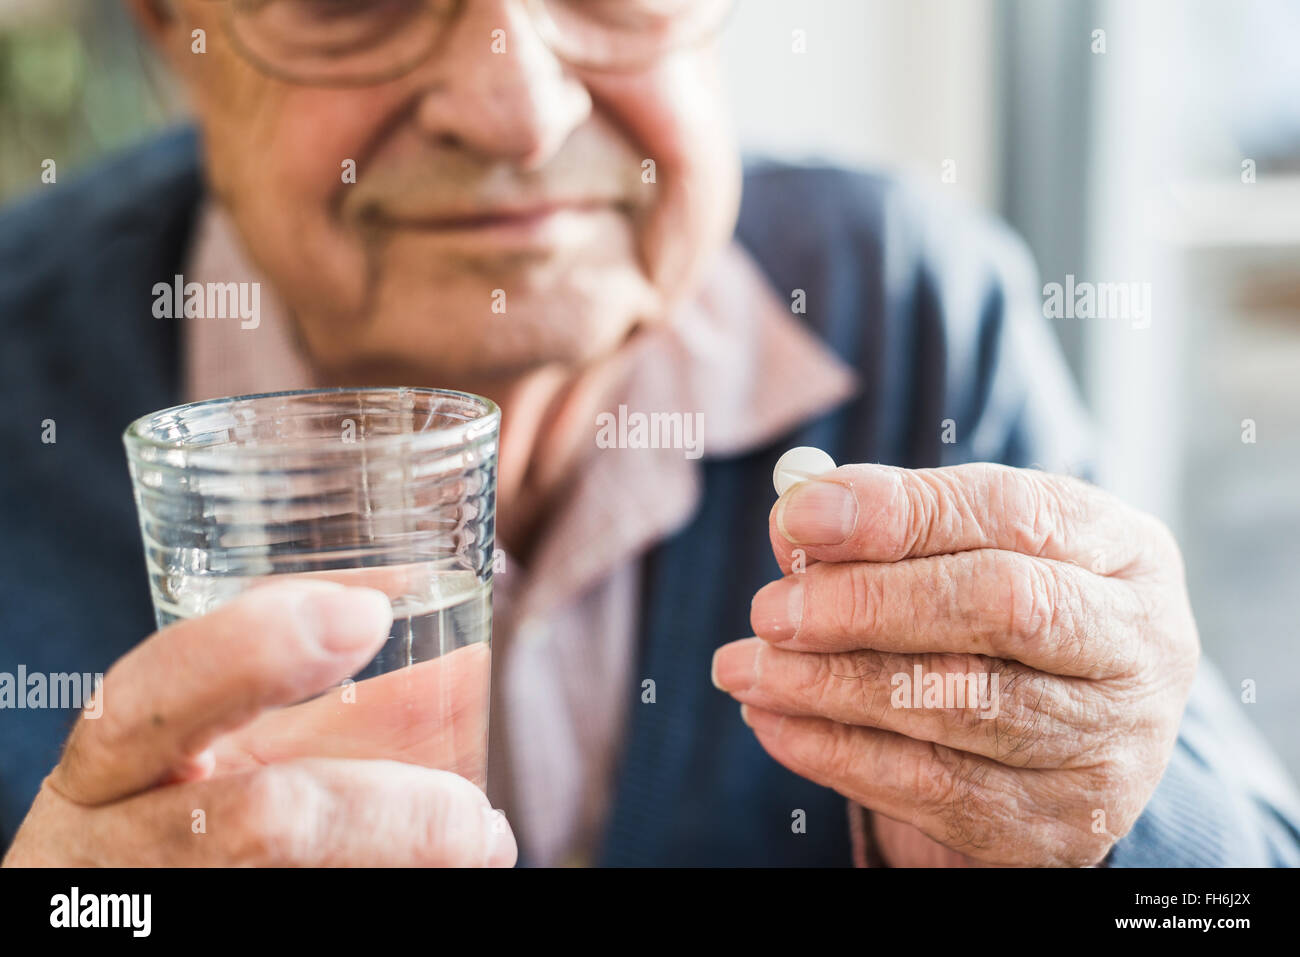 Hands of senior man holding tablet and glass of water, close up - Stock Image